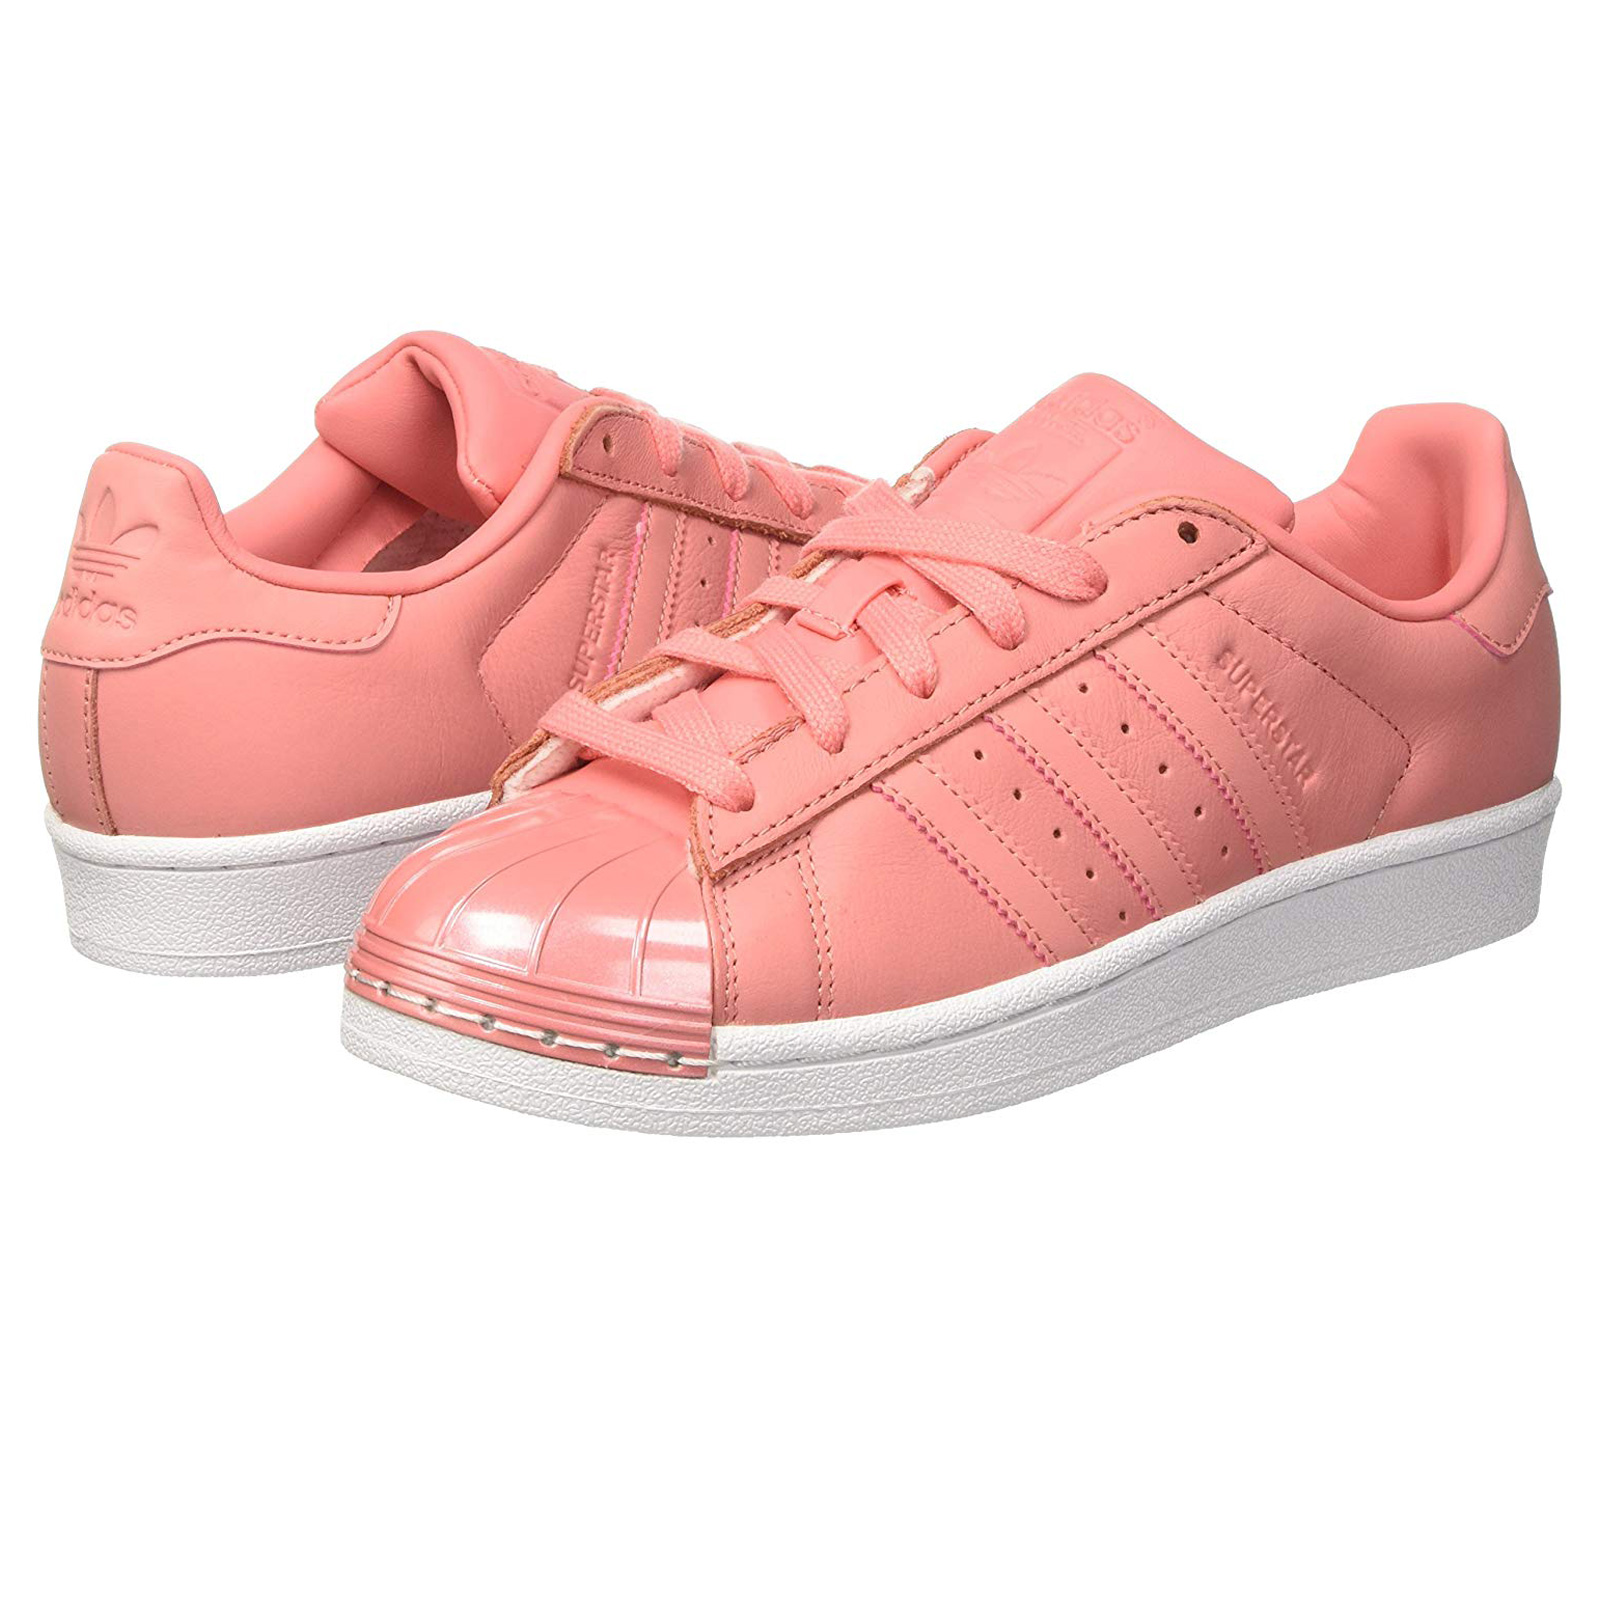 info for bbdd5 b1fcc ADIDAS DAMEN SUPERSTAR GLOSSY TOE SNEAKER SCHUHE BY9750 LEDER ROSA Tactile  Rose